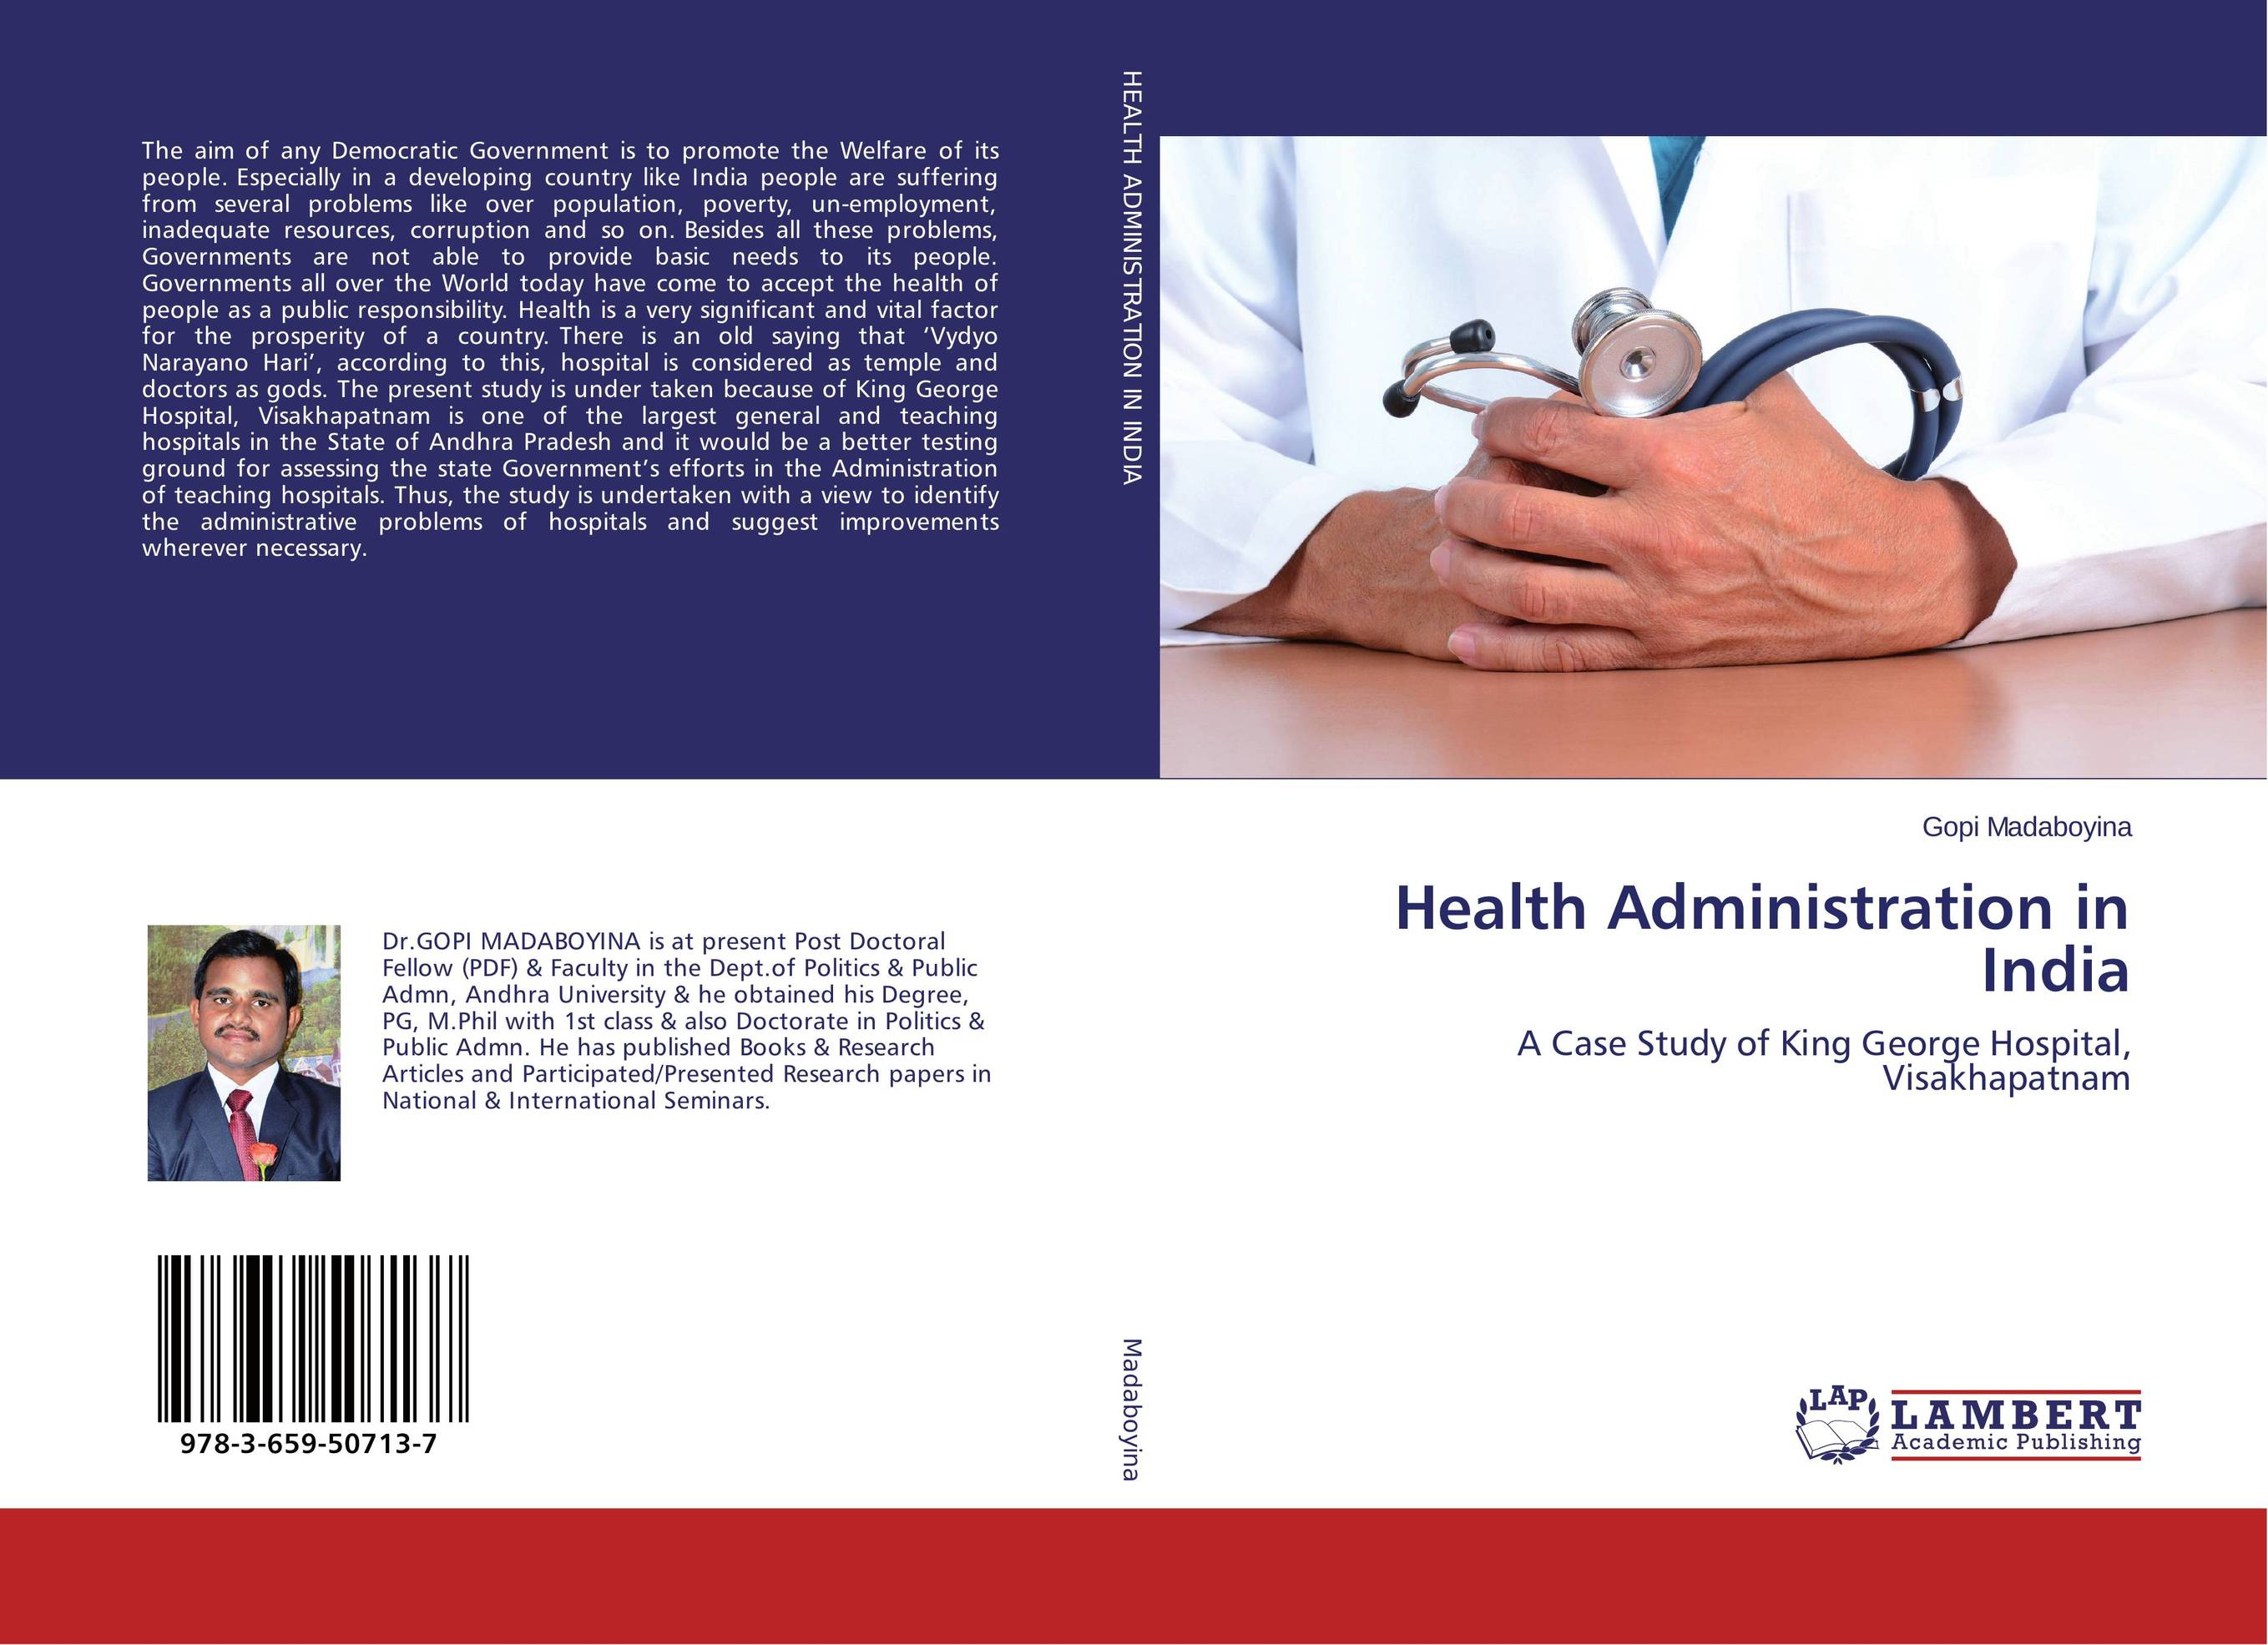 Health Administration in India prostate health devices is prostate removal prostatitis mainly for the prostate health and prostatitis health capsule